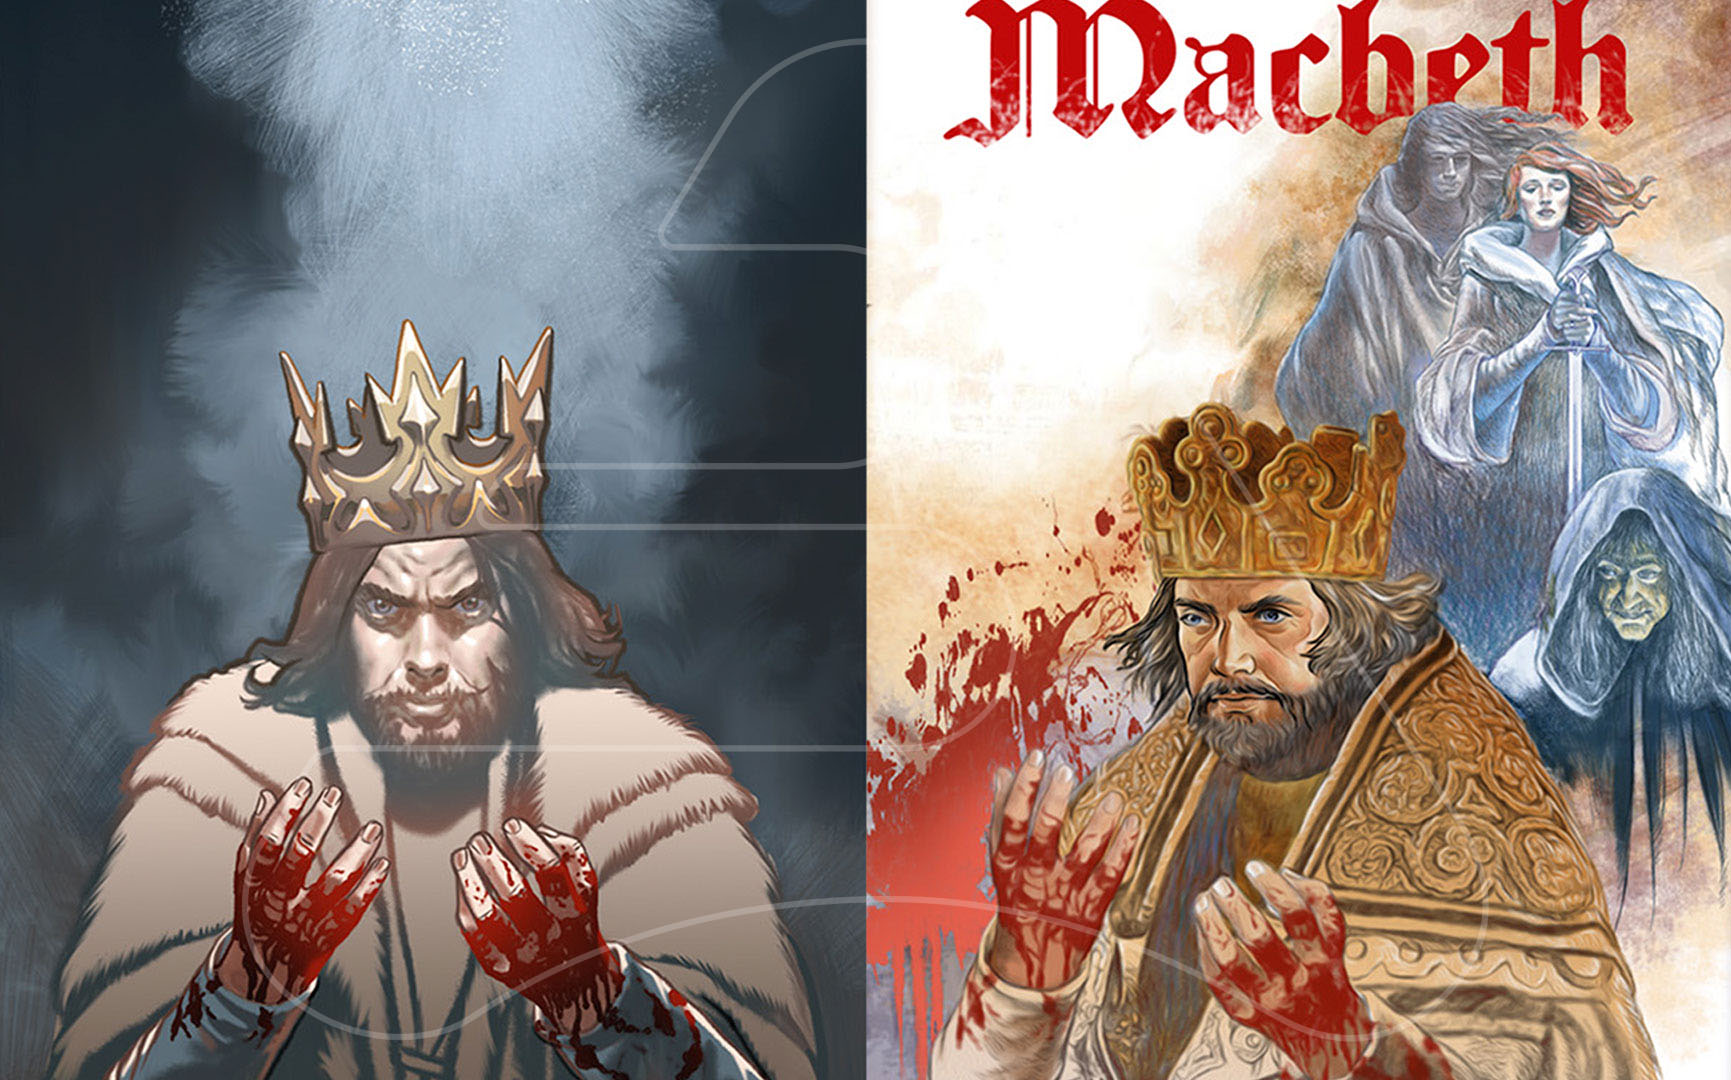 Macbeth / Origo publishers / Digital Illustration